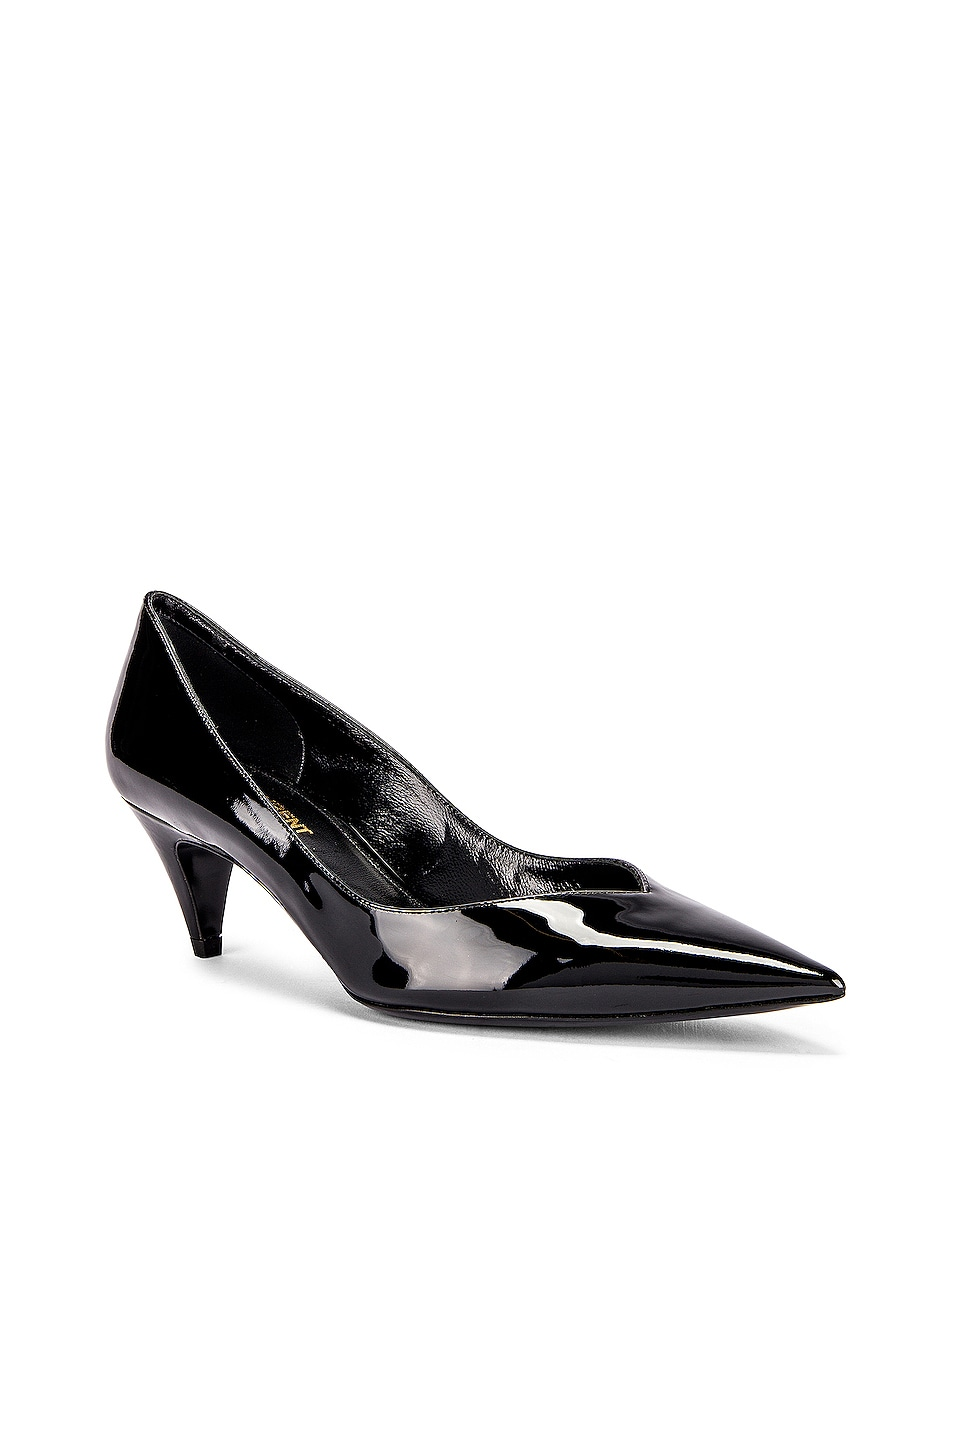 Image 2 of Saint Laurent Kiki Kitten Heels in Black